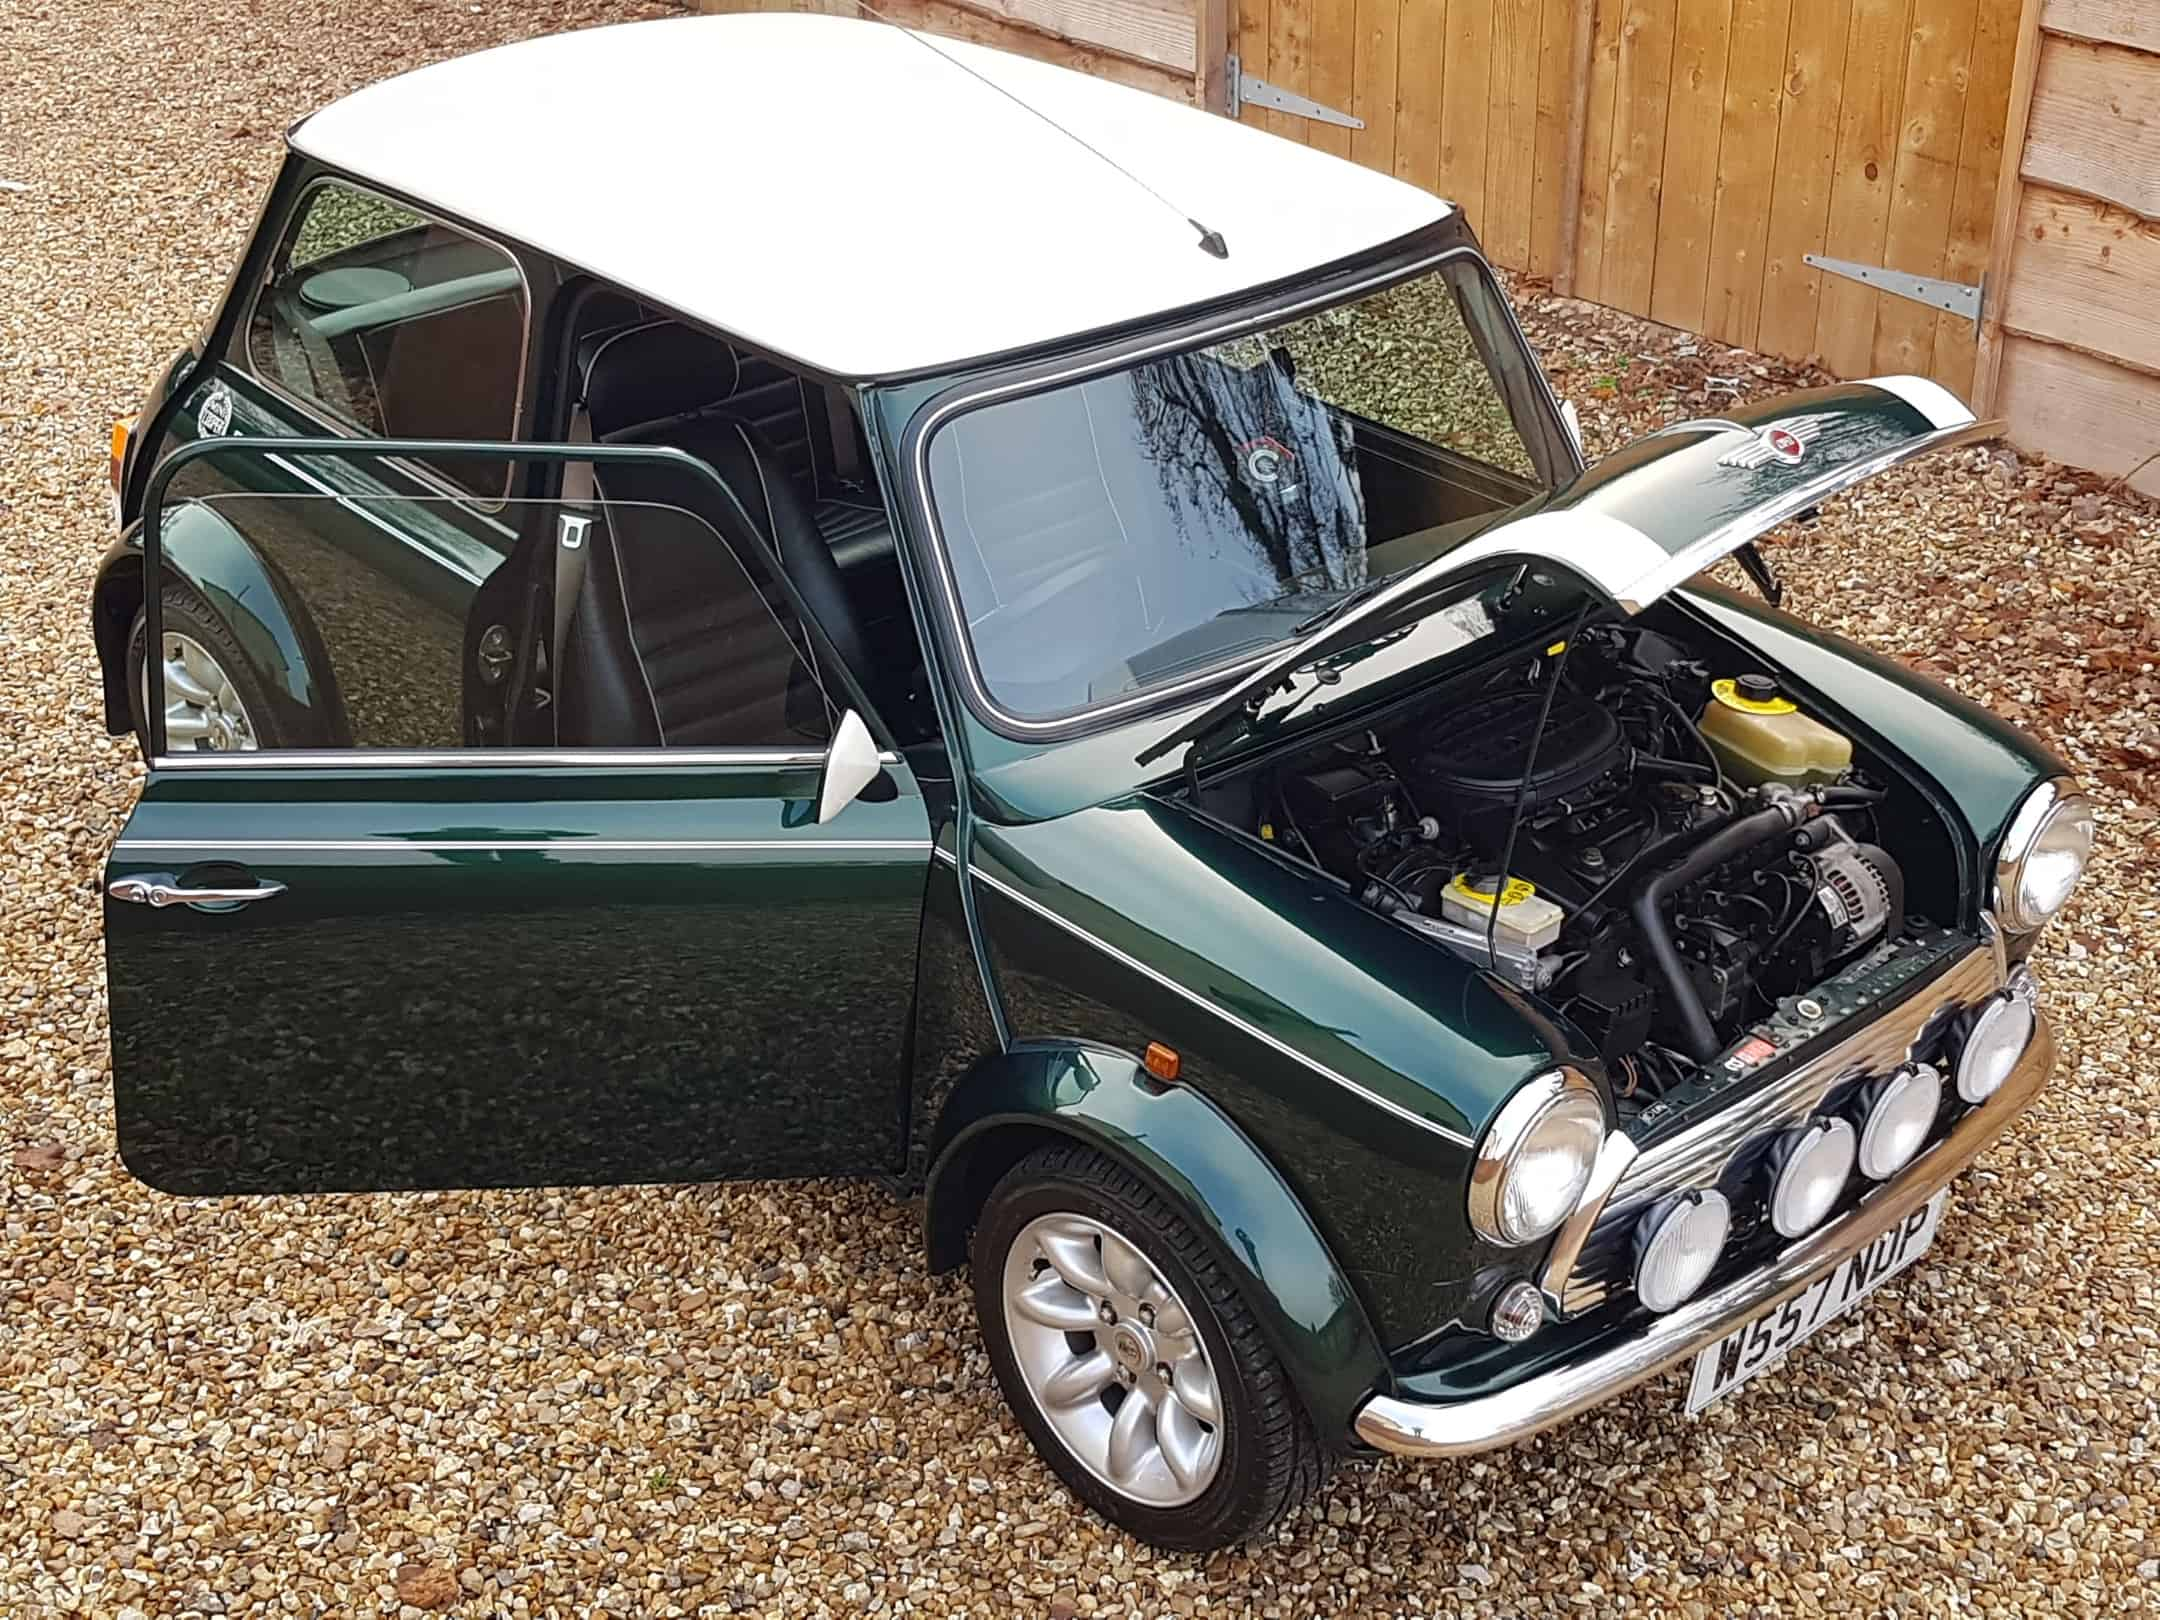 ** NOW SOLD ** Immaculate 2000 Mini Cooper Sport On Just 17600 Miles From New!